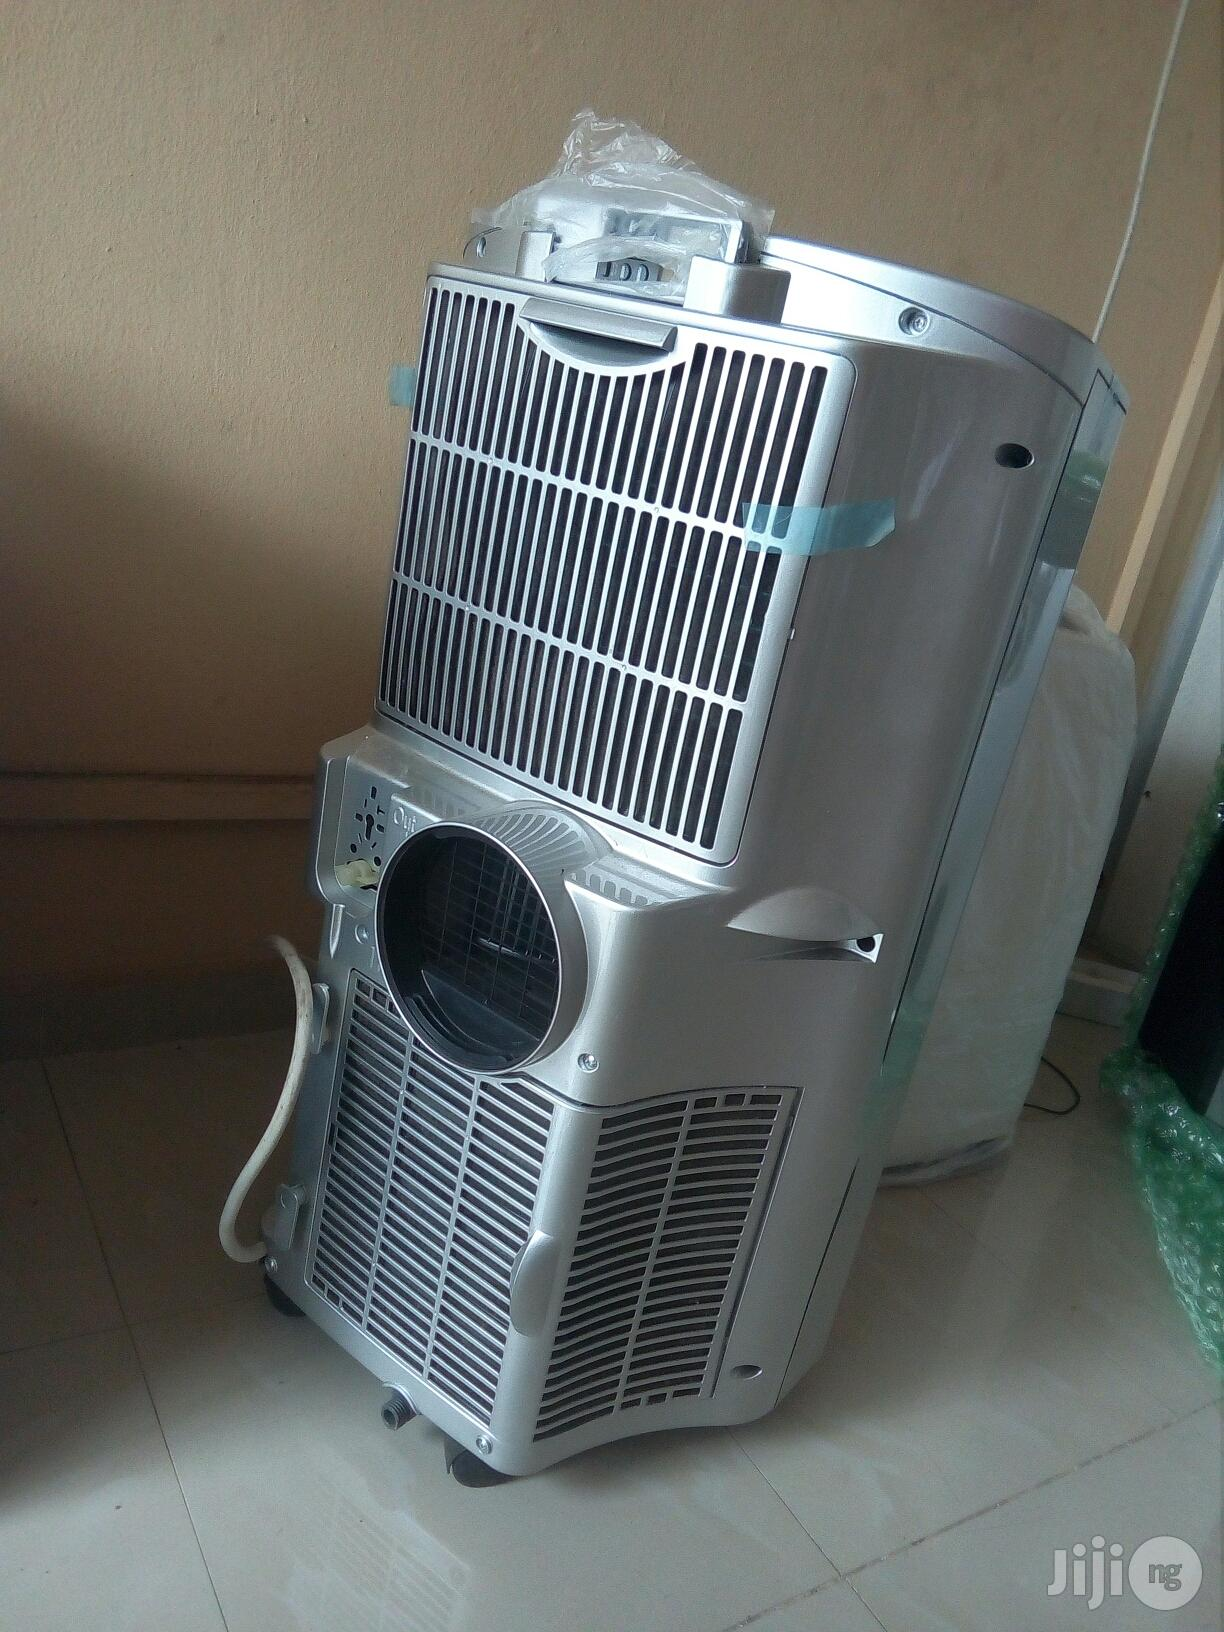 LG Air Conditioner | Home Appliances for sale in Ikeja, Lagos State, Nigeria